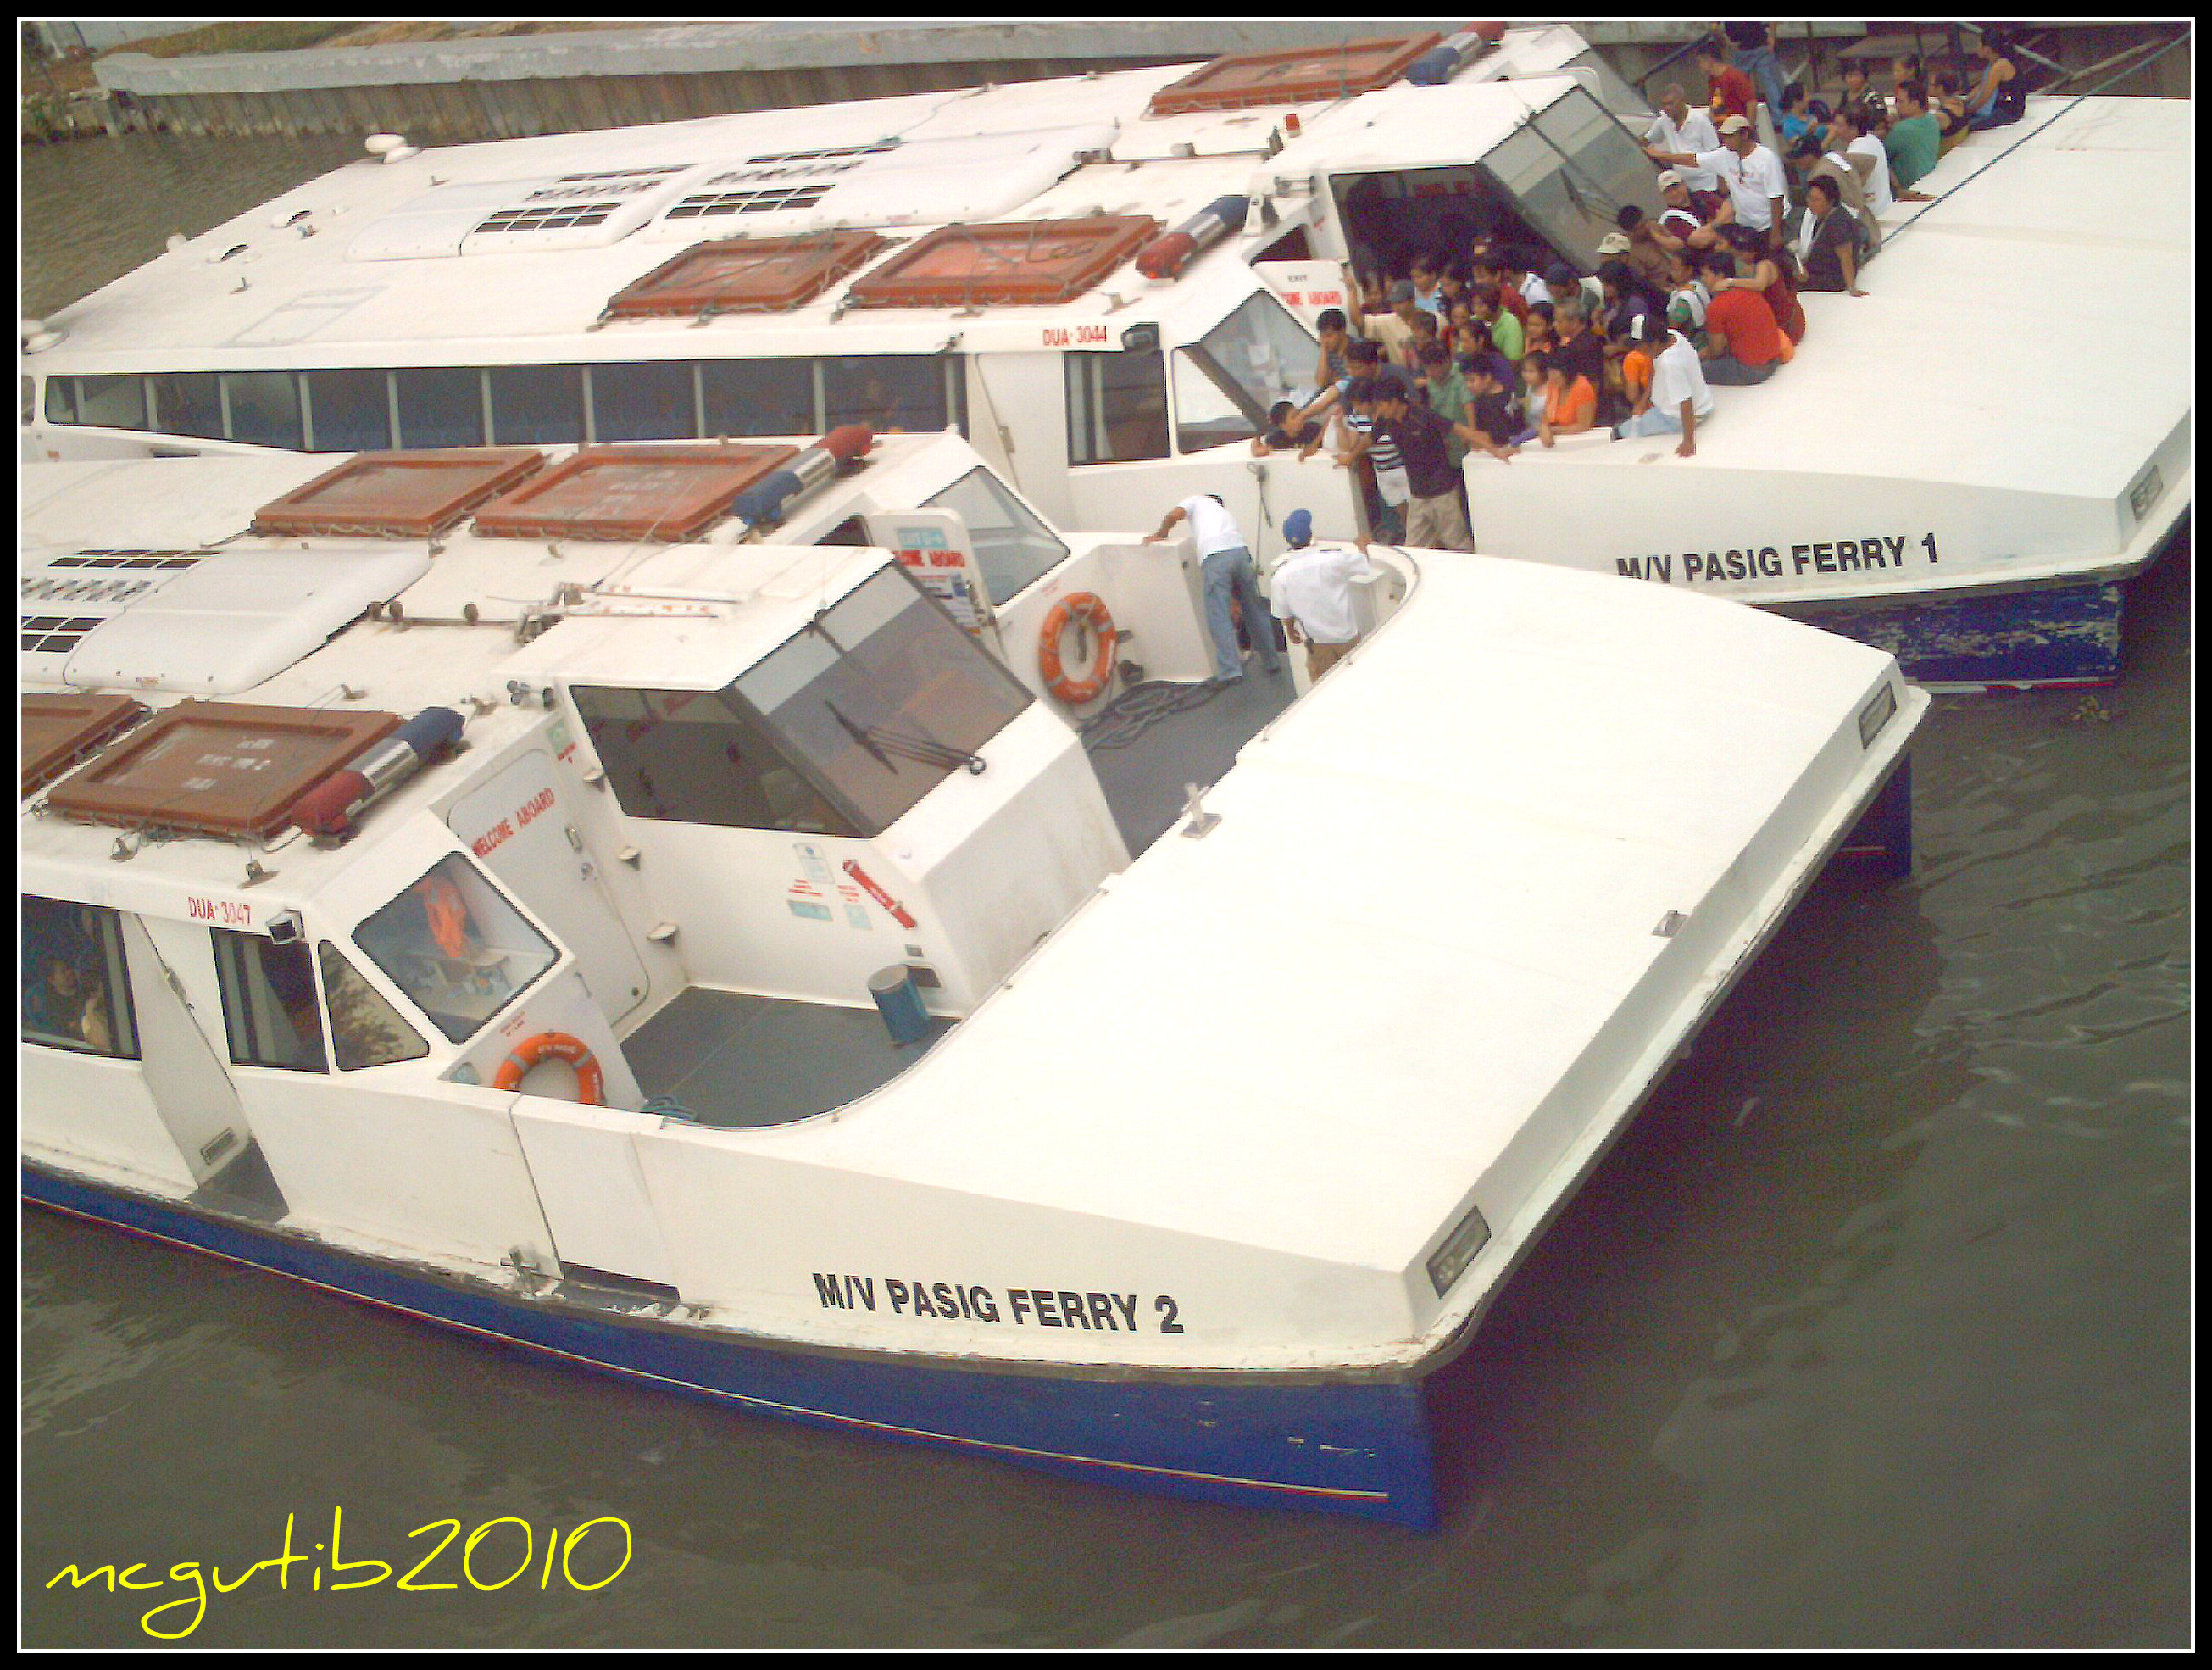 Pasig River Ferry Schedule Pasig River Ferry Seen at